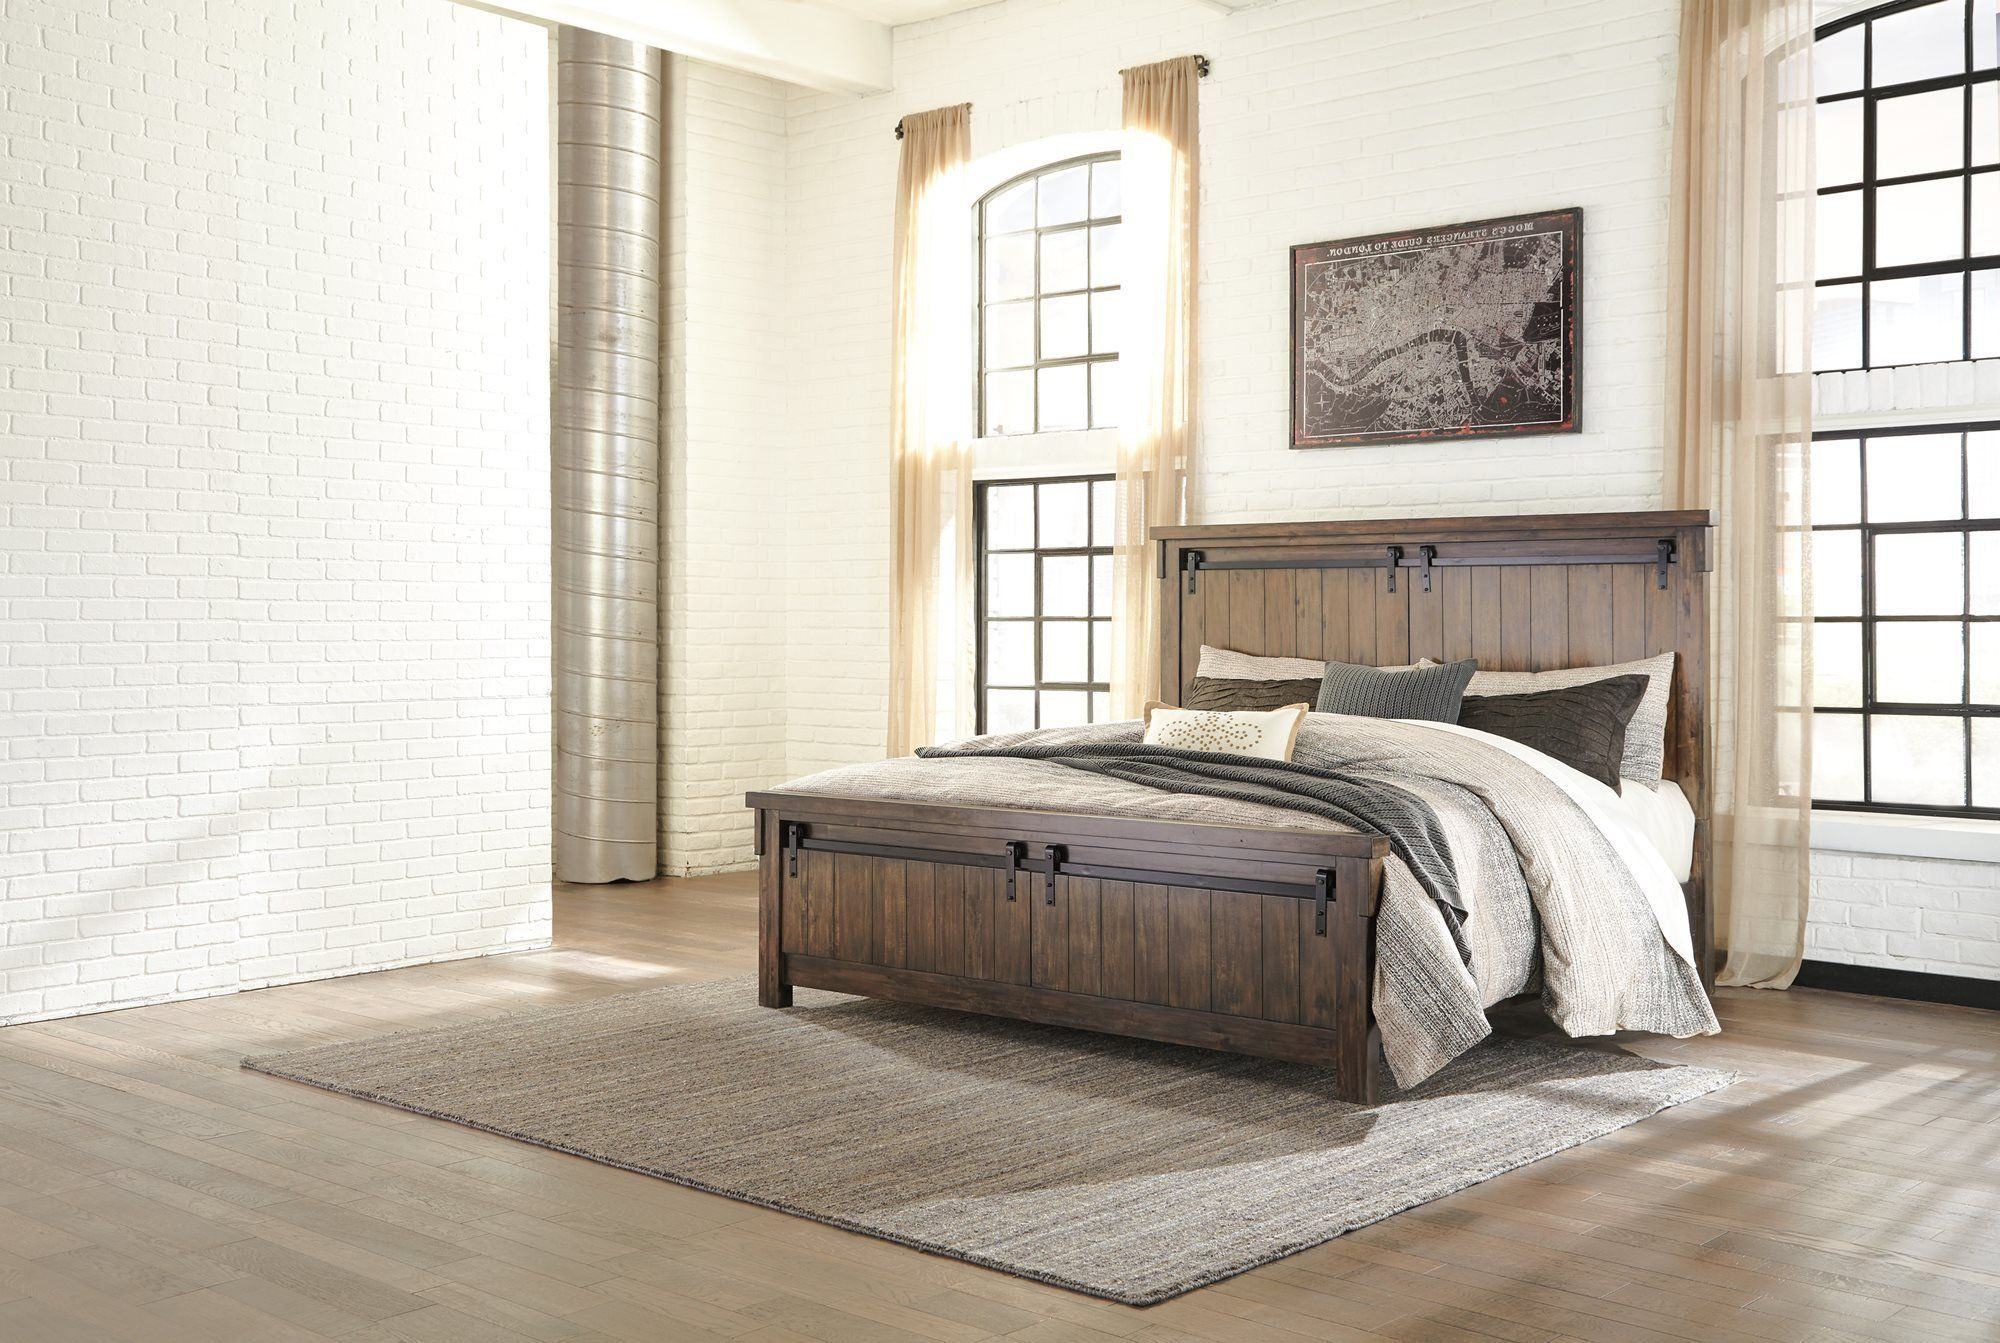 Ashley Lakeleigh E King Panel Bed In Brown Gt Gt Gt For More Information Visit Image Link This Is